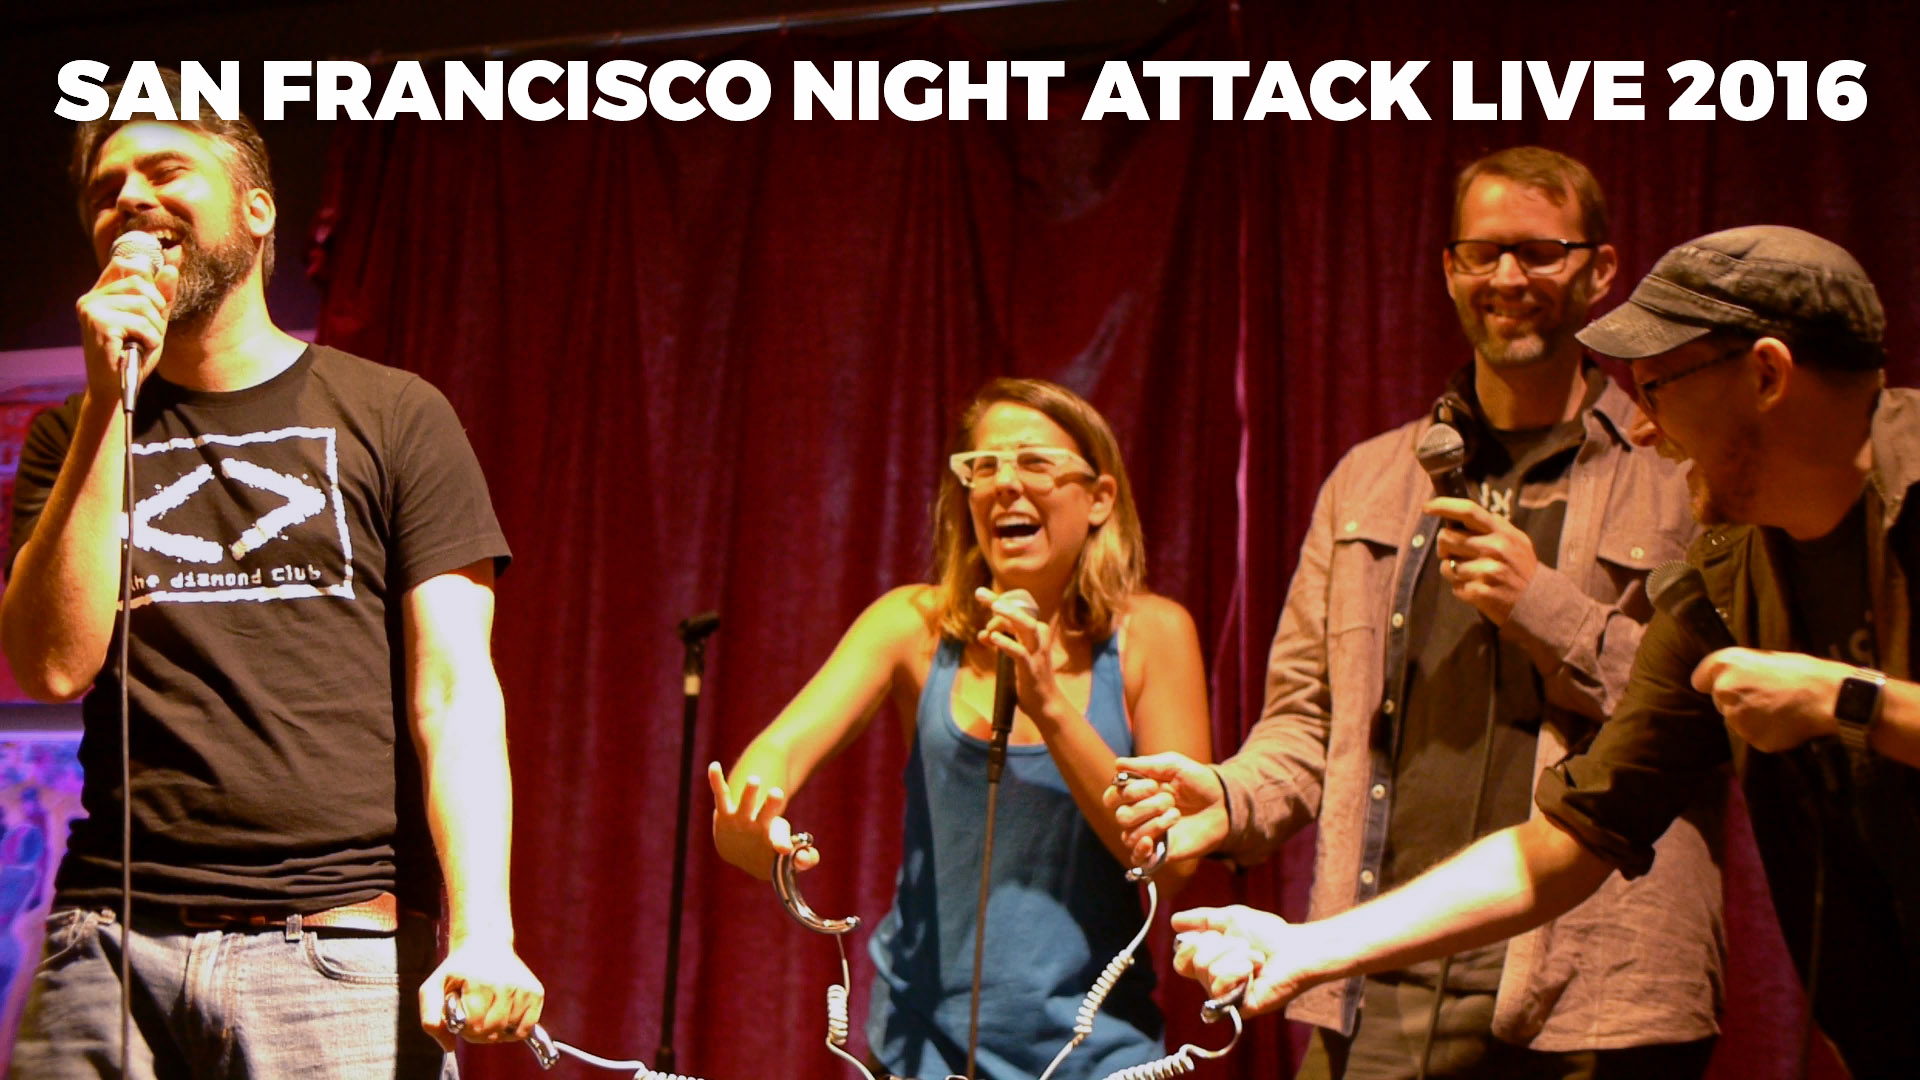 Episode 116: San Francisco Night Attack Live 2016